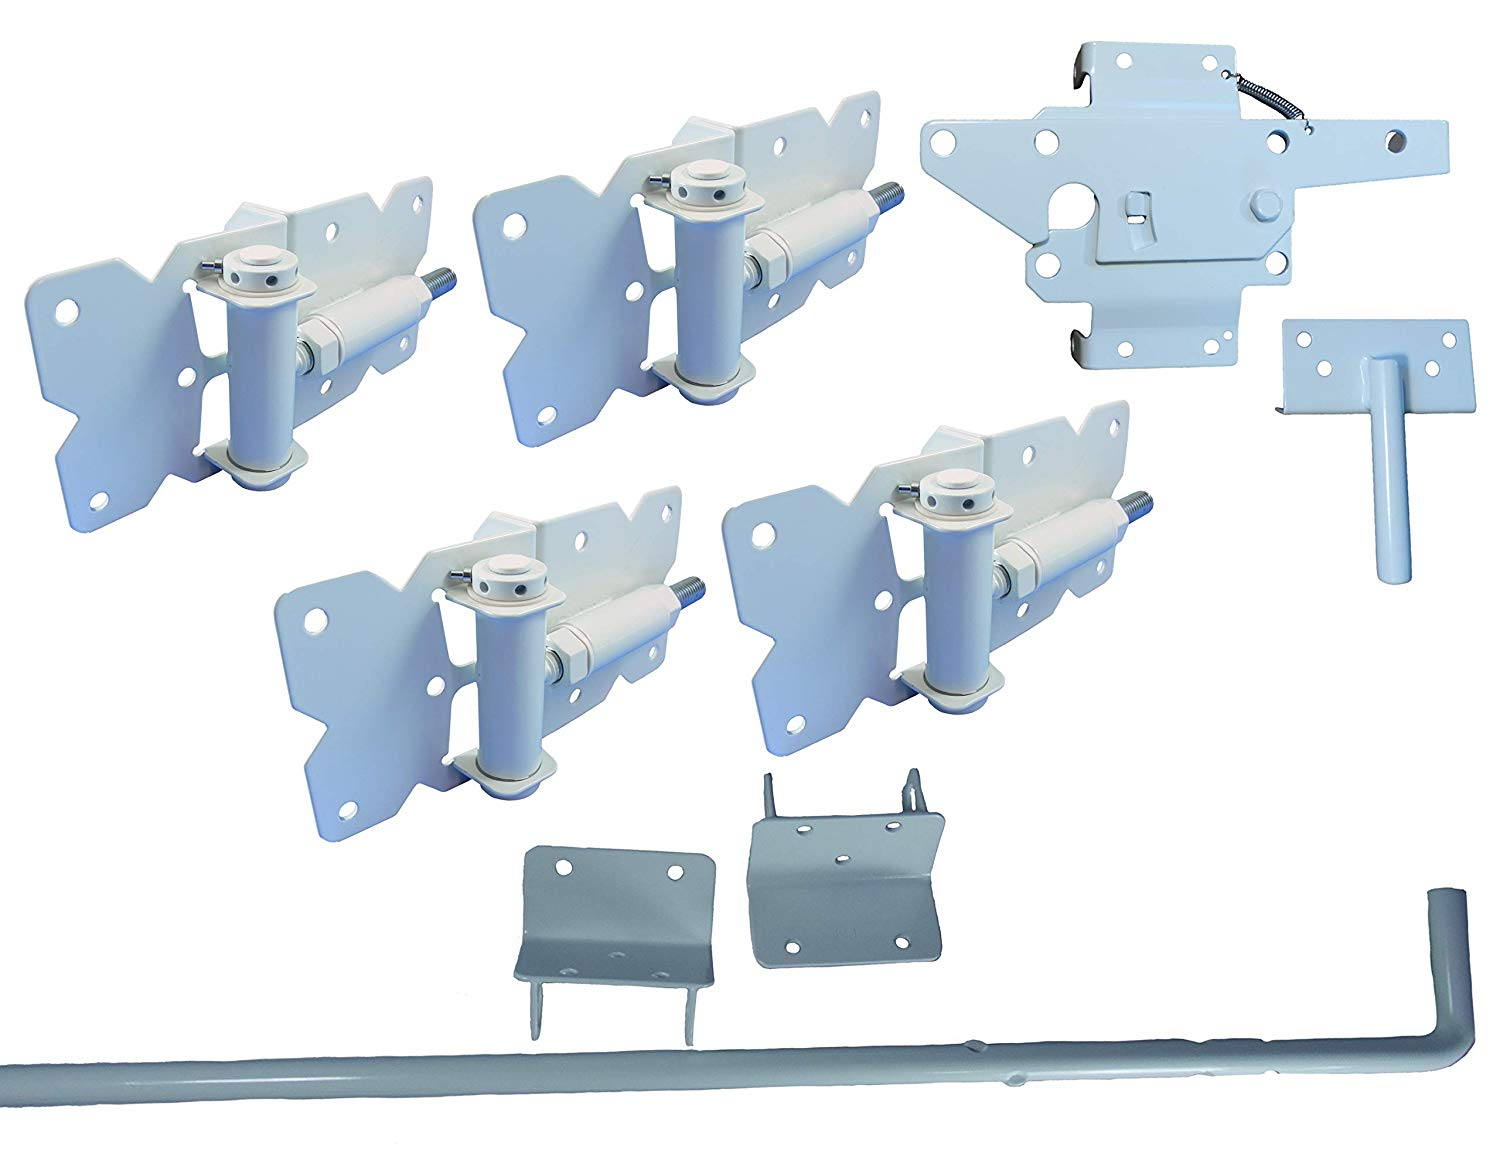 Vinyl Fence Gate Double Gate Hardware Kit White (for Vinyl, PVC etc Fencing) - Double Fence Gate Kit has 4 Hinges, 1 Latch, and 1 Drop Rod